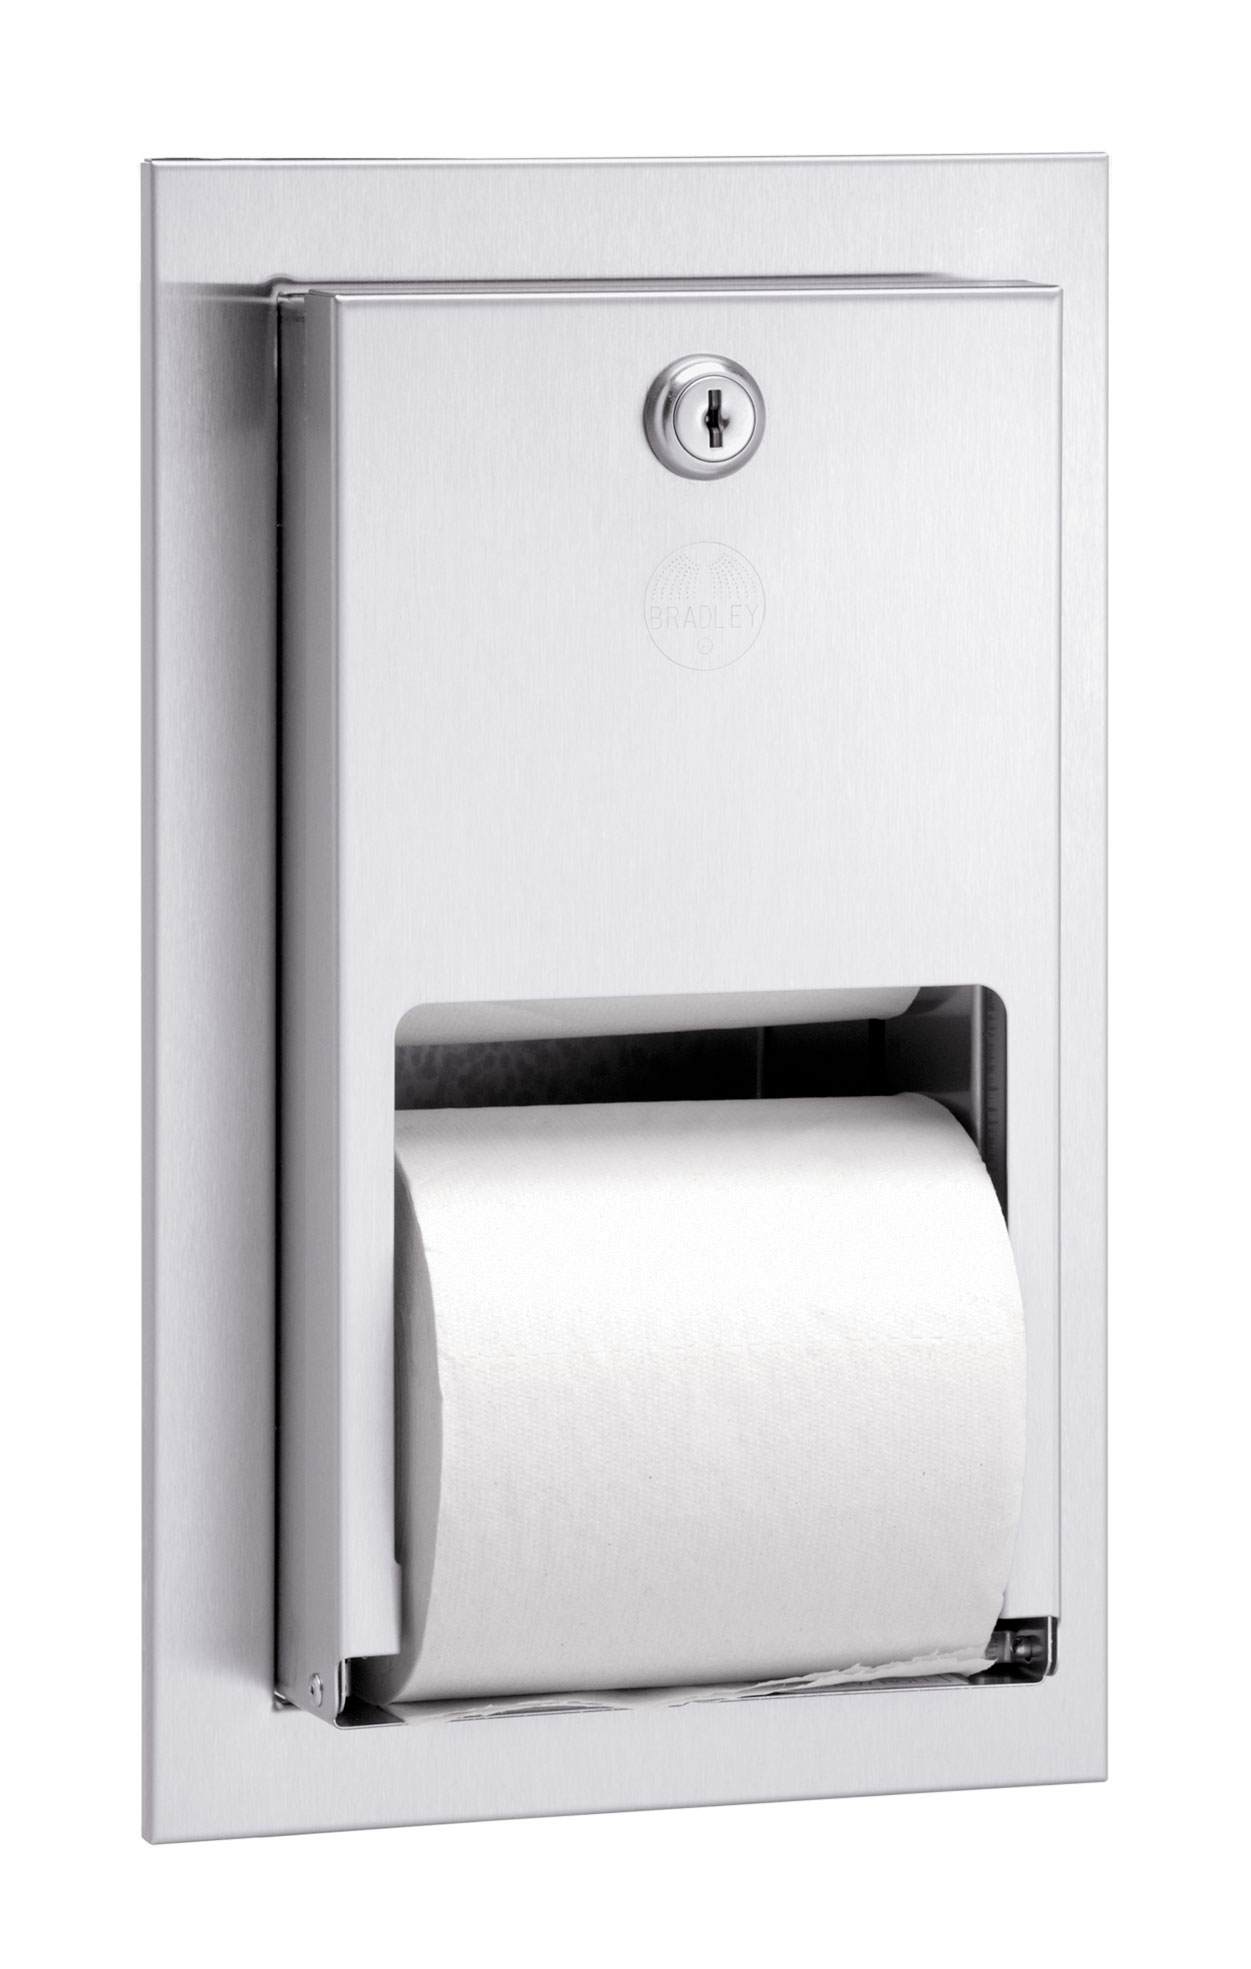 Bradley Bathroom Accessories Recessed Stainless Steel Stacking Rolls Toilet Tissue Dispenser